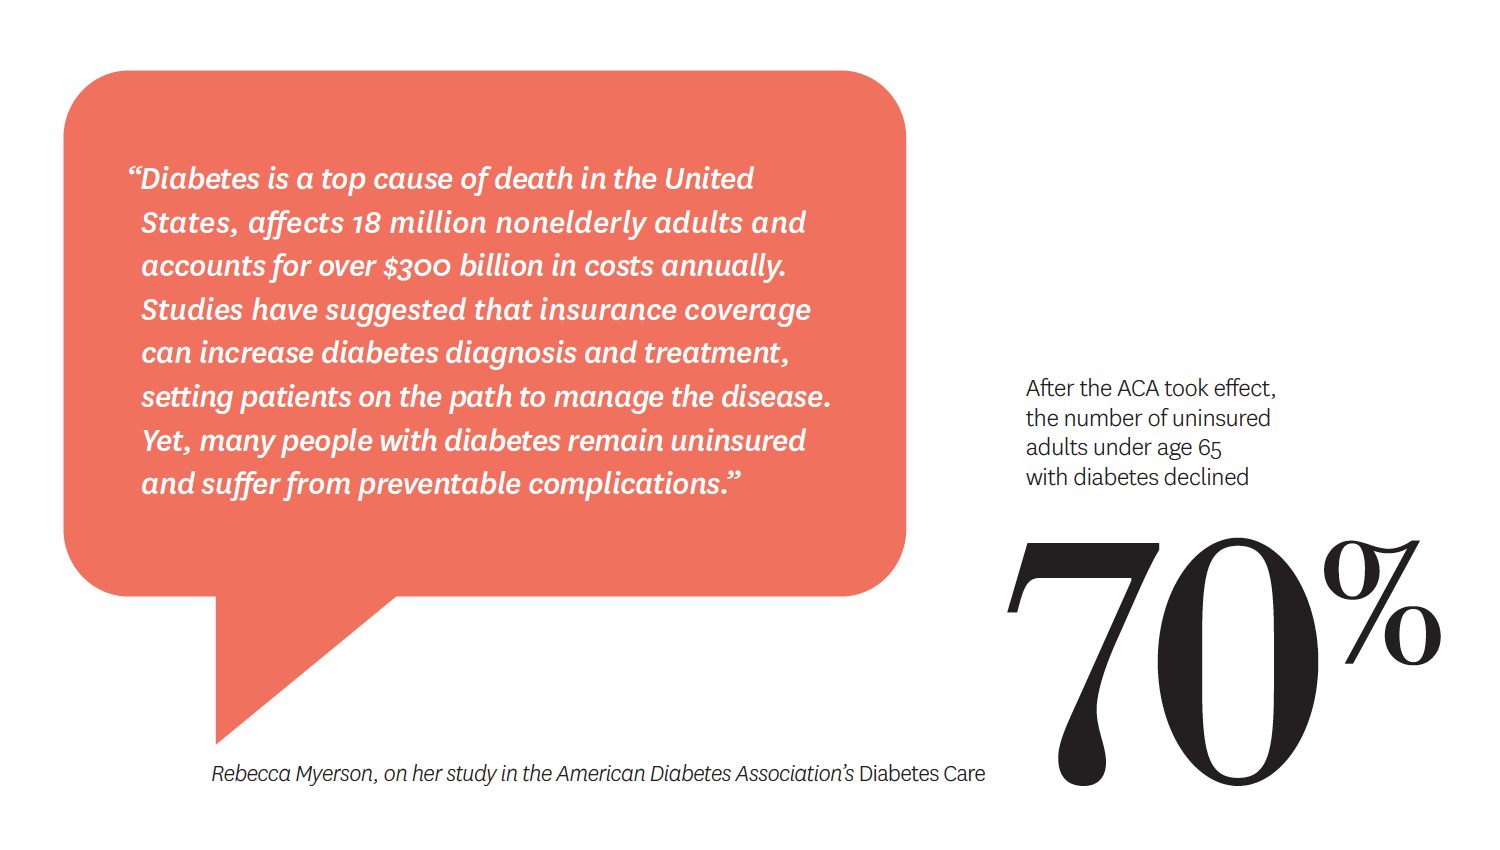 After the ACA took effect, the number of uninsured adults under age 65 with diabetes declined 70%.